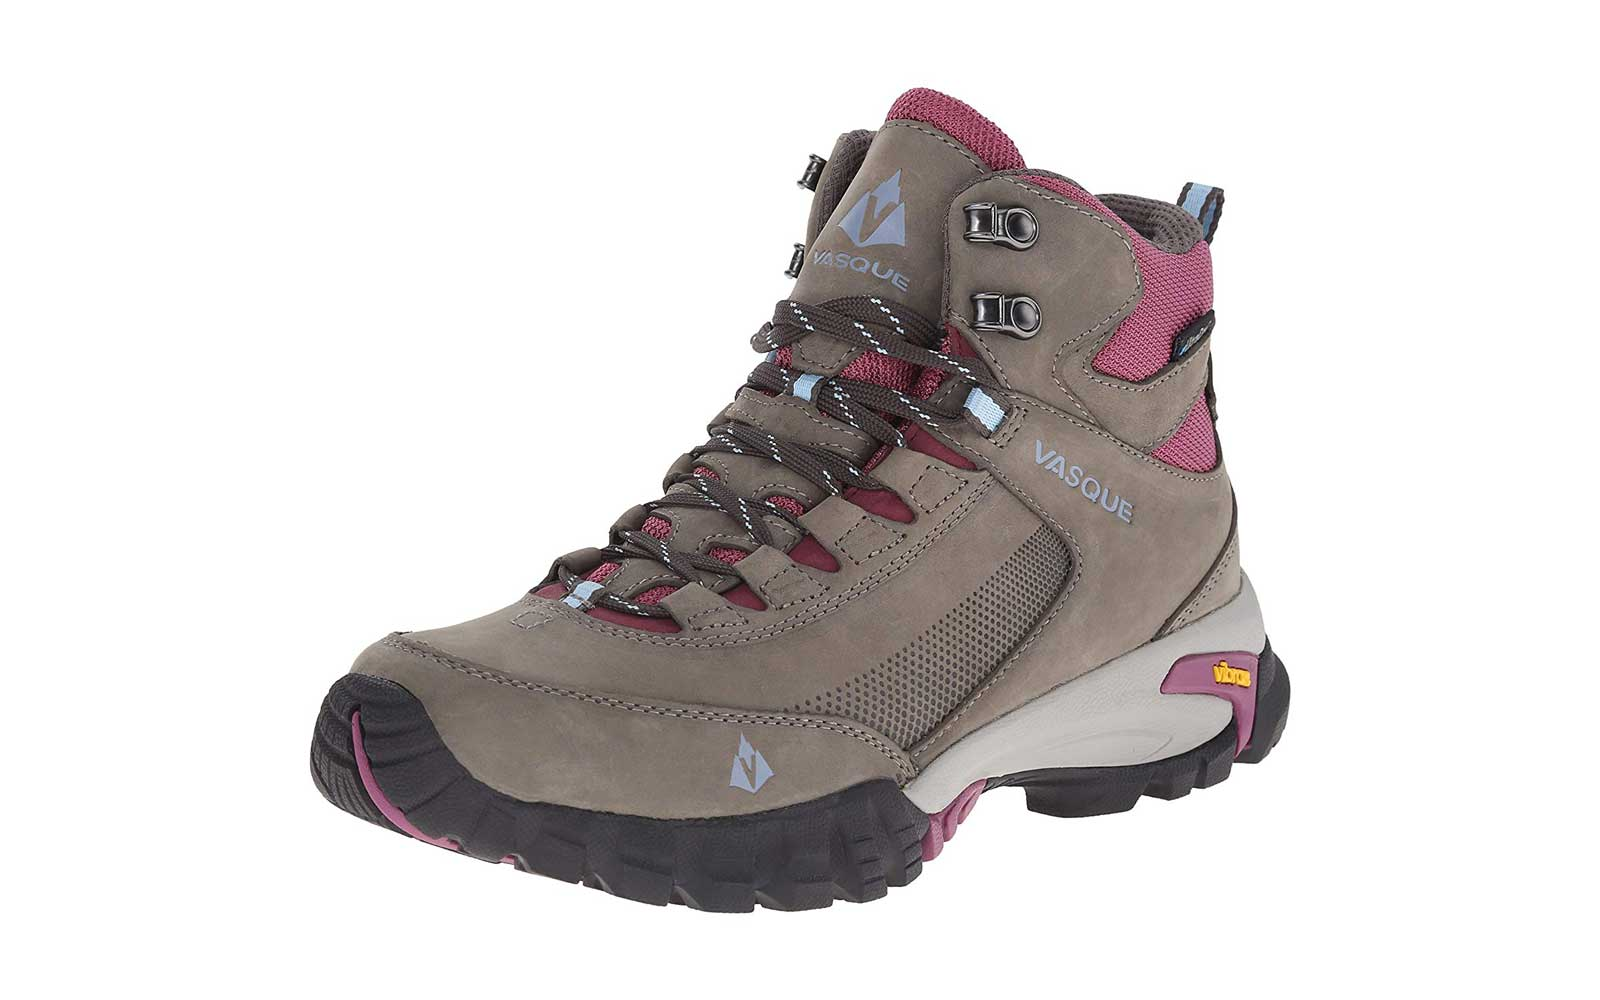 146ba5ccbb The 20 Best Hiking Shoes and Boots for Women in 2019 | Travel + Leisure